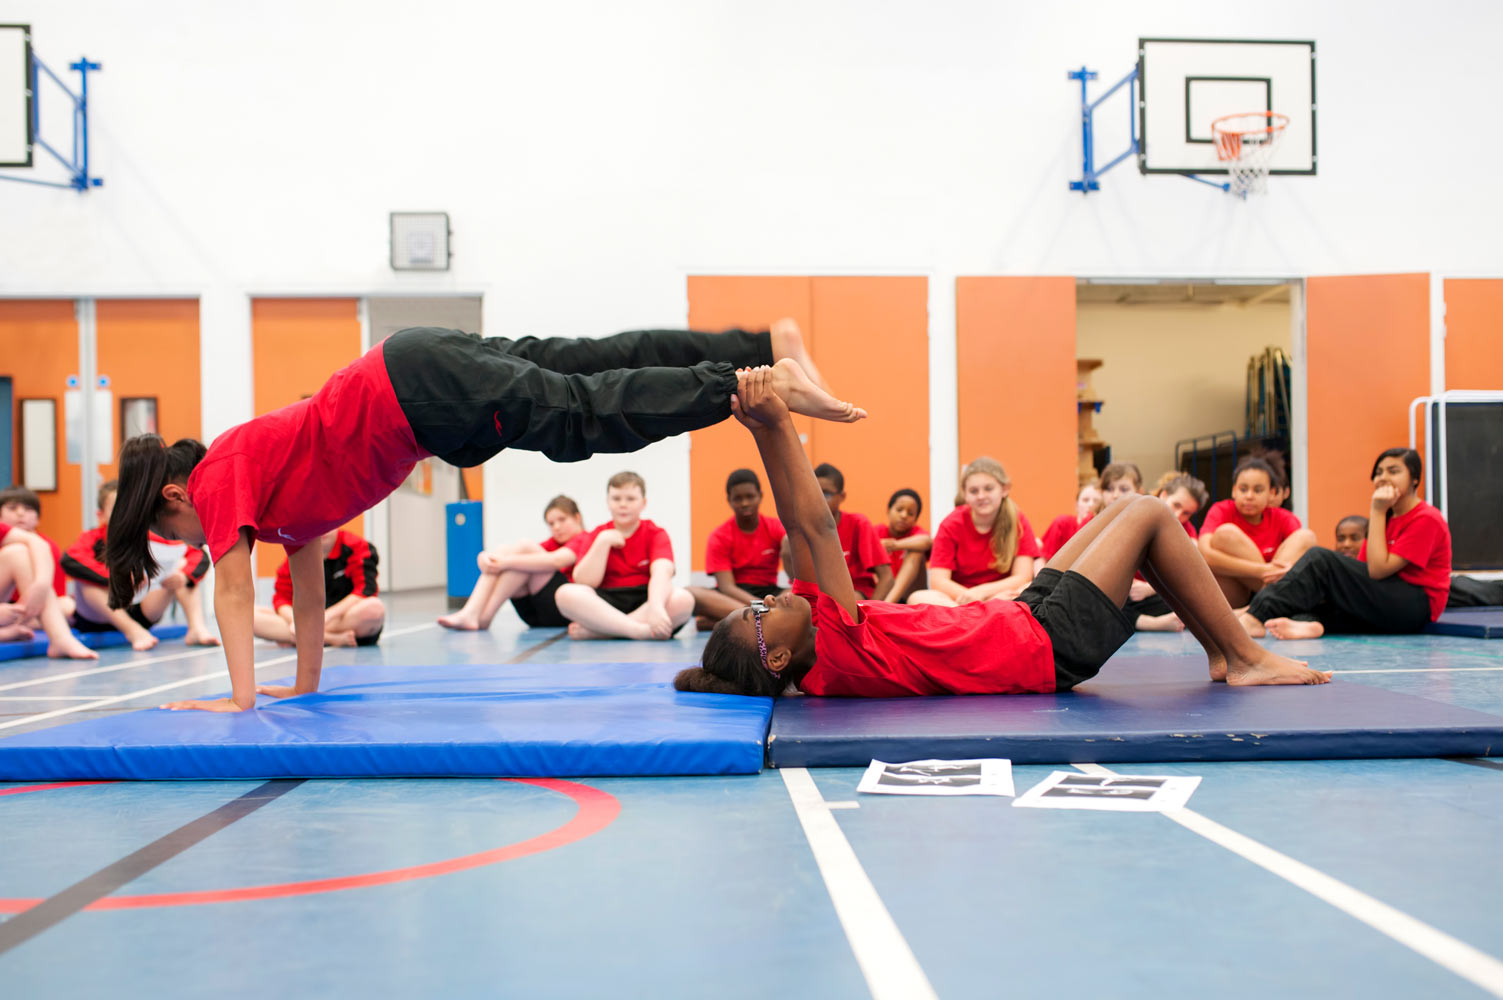 Secondary gymnastics lesson